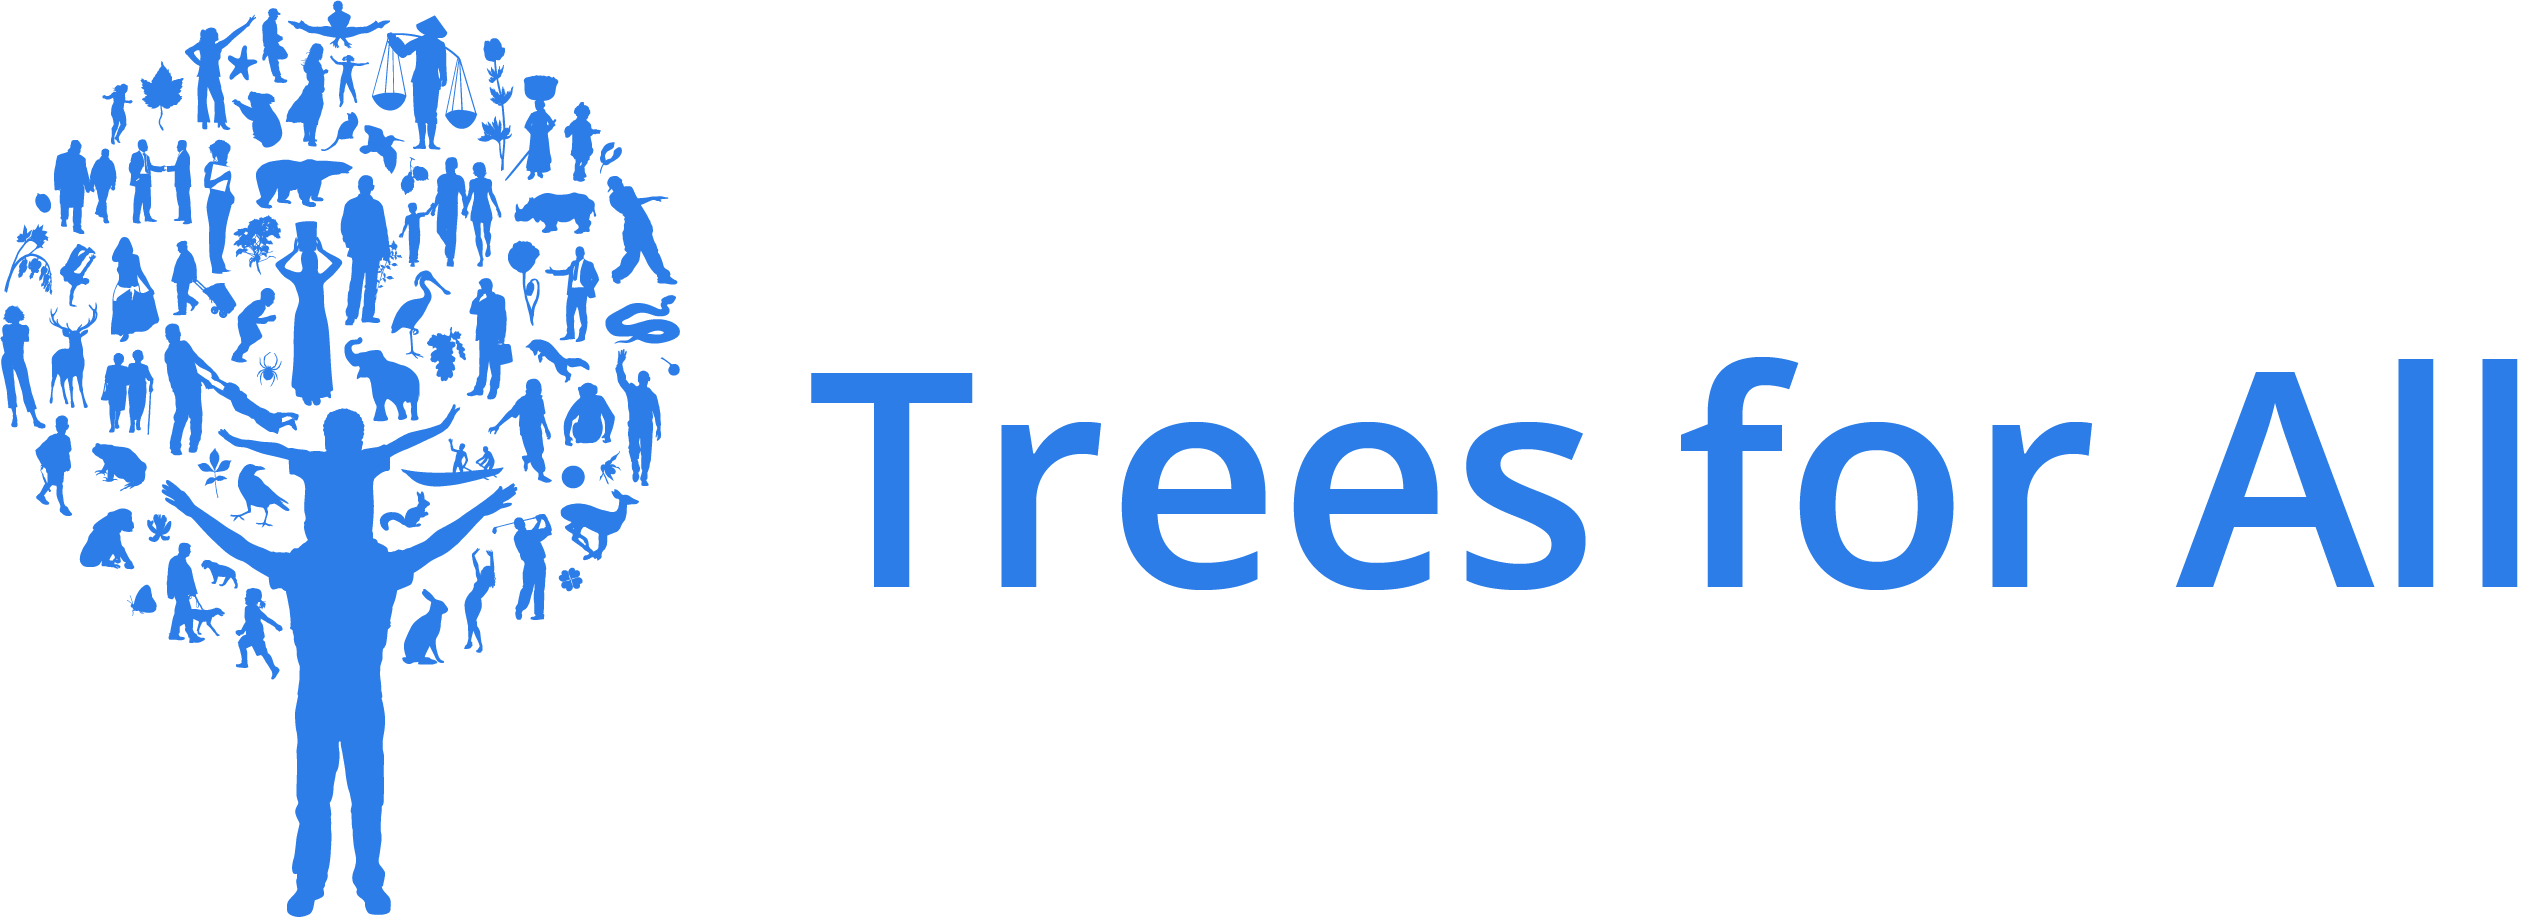 Trees 4 All